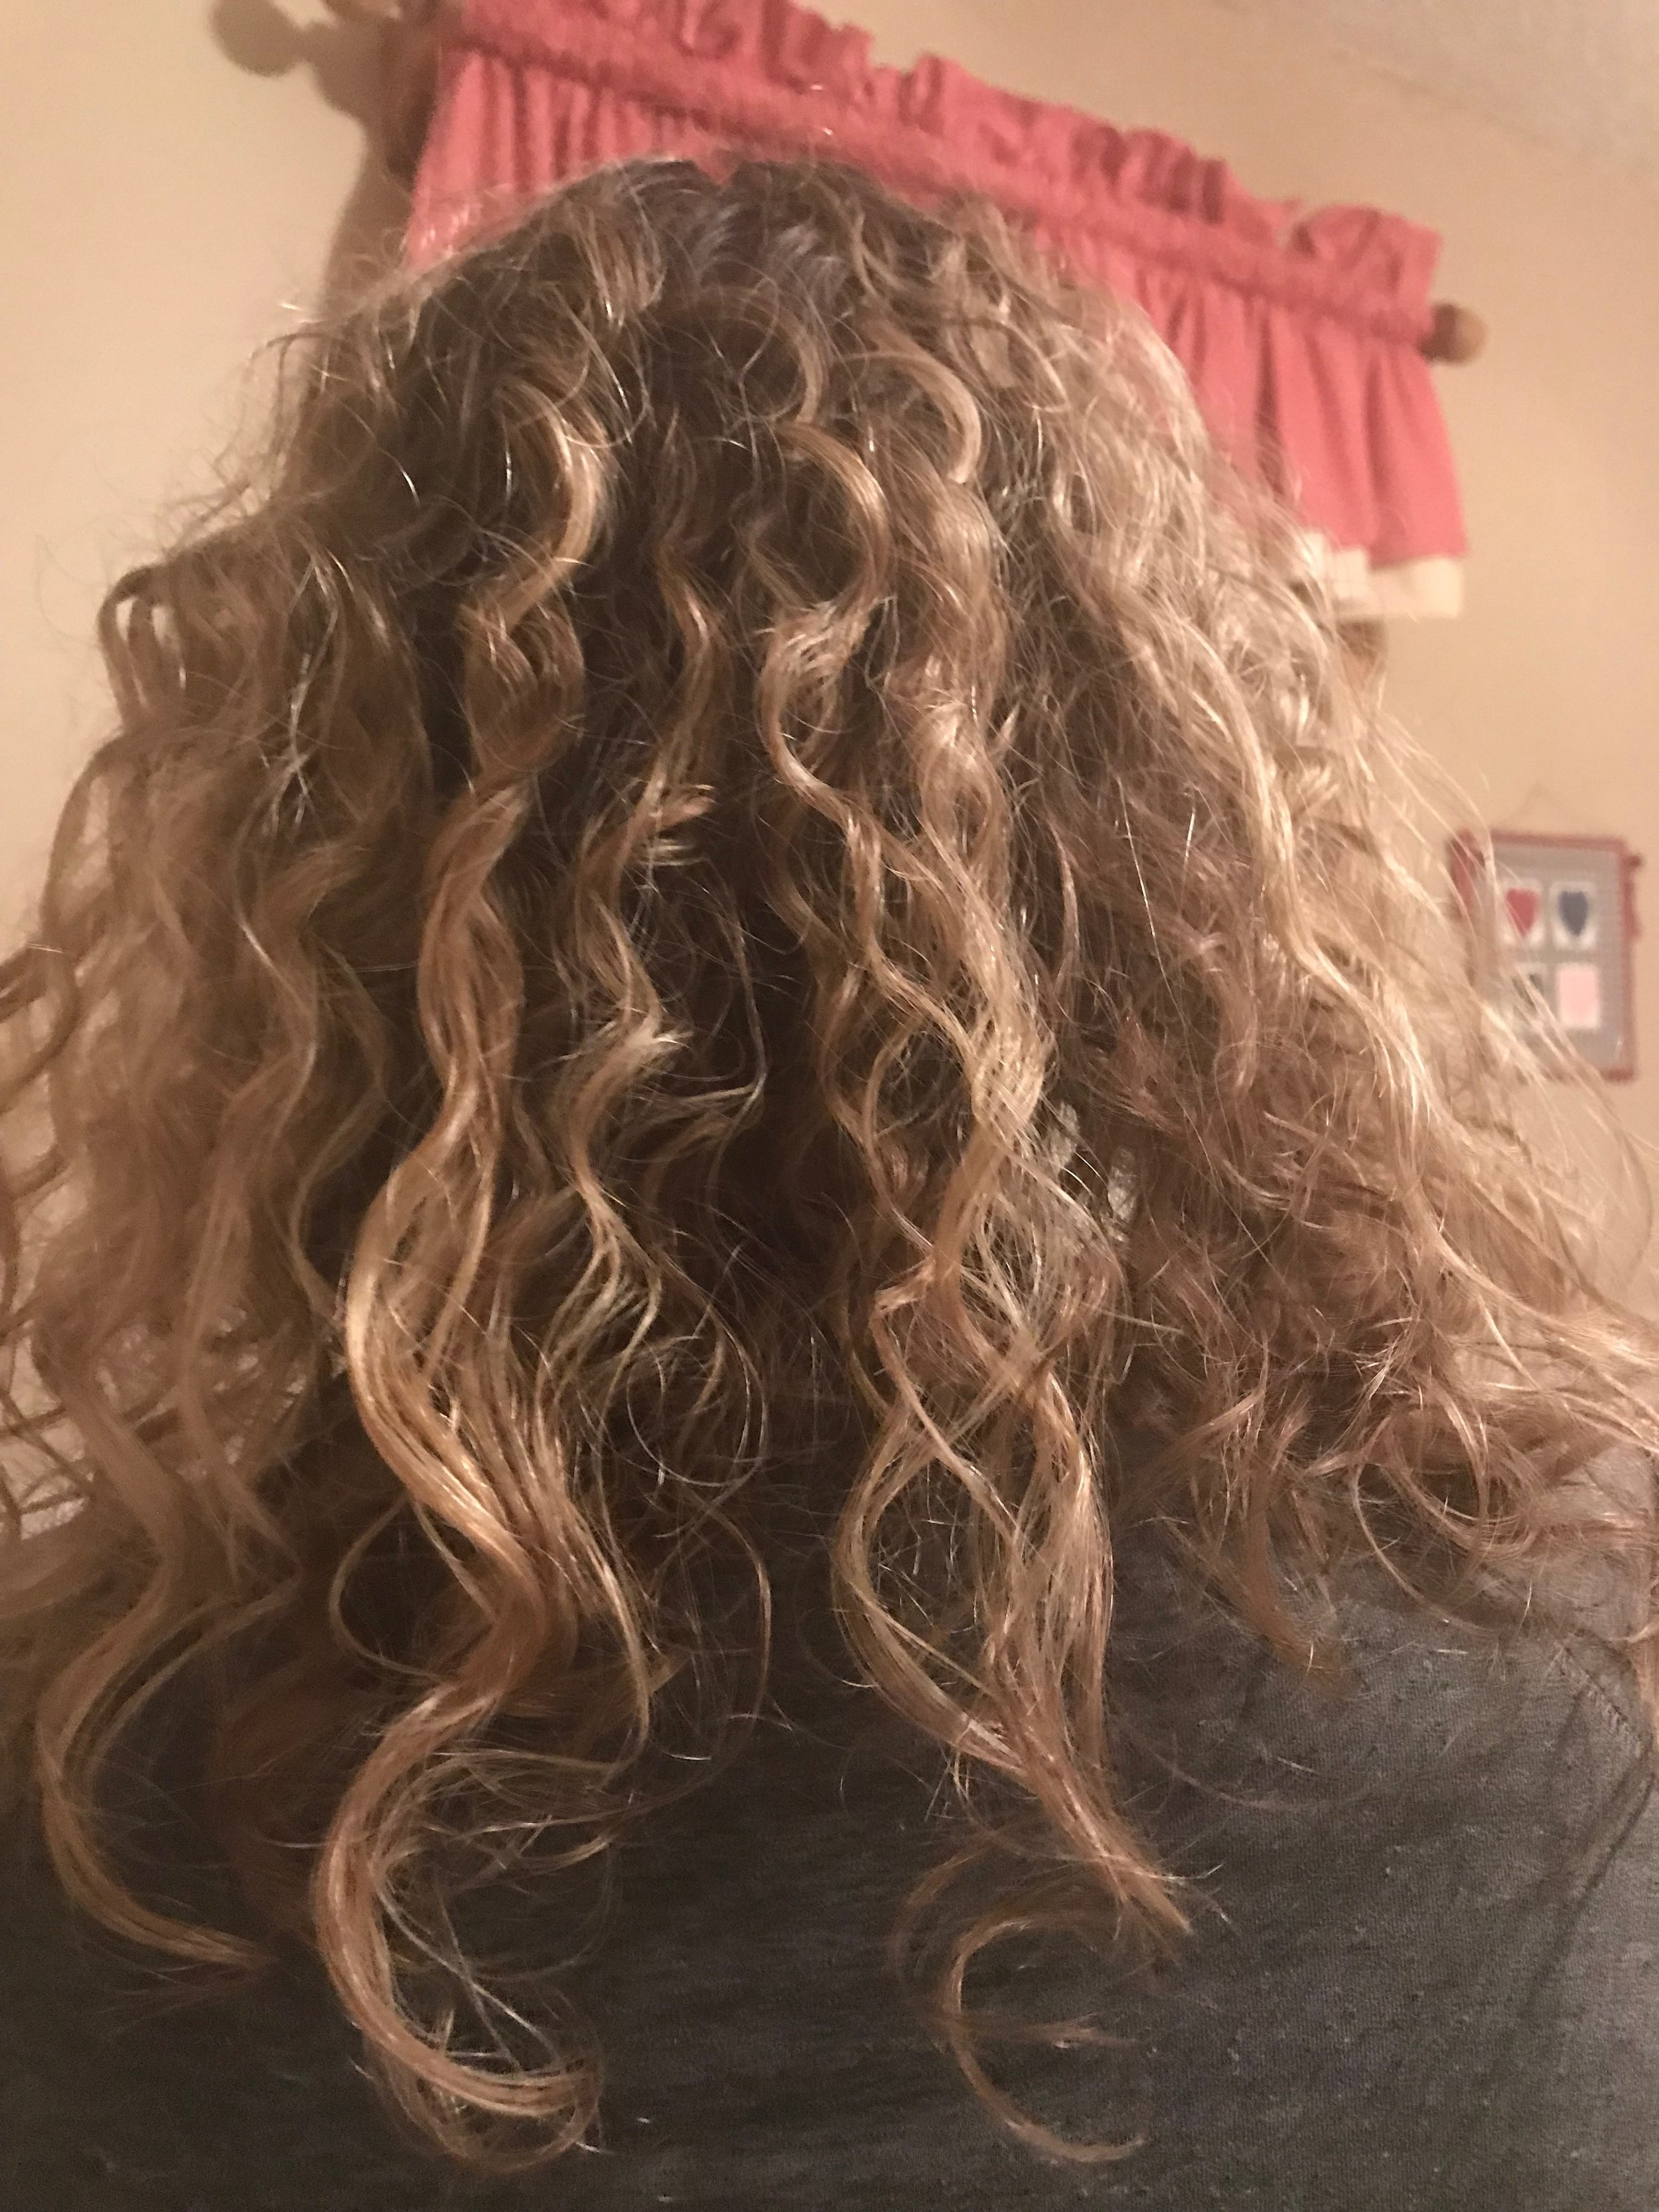 Pic of the bank of my hair curly.